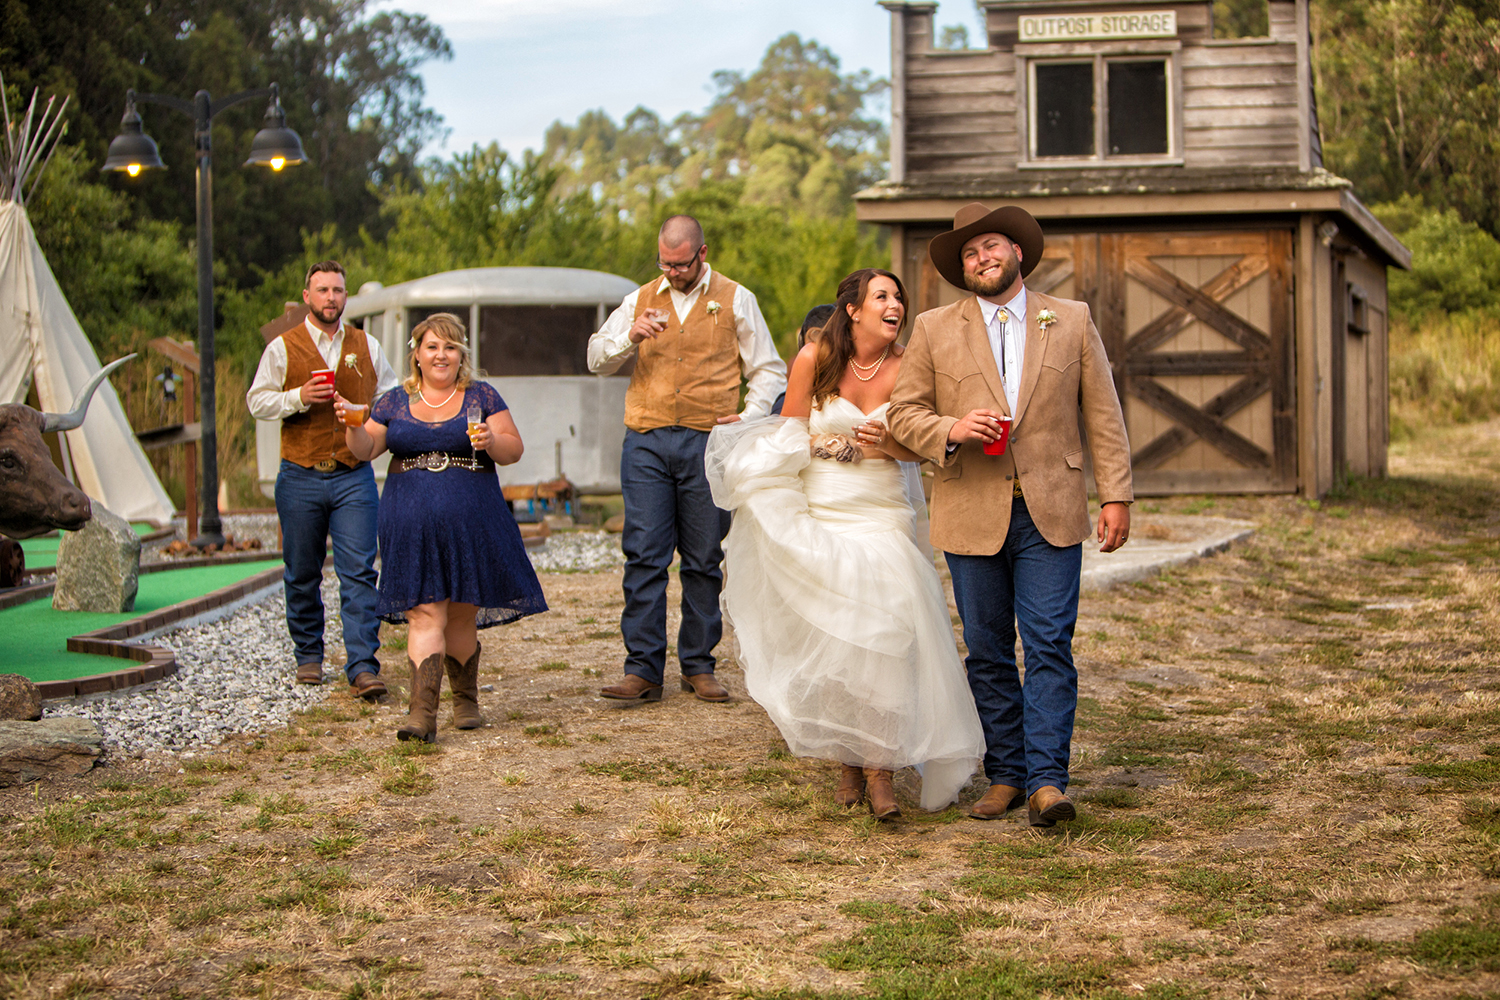 Dena_Rooney_Wedding_Photographer_Long_Branch_Farms_044.jpg